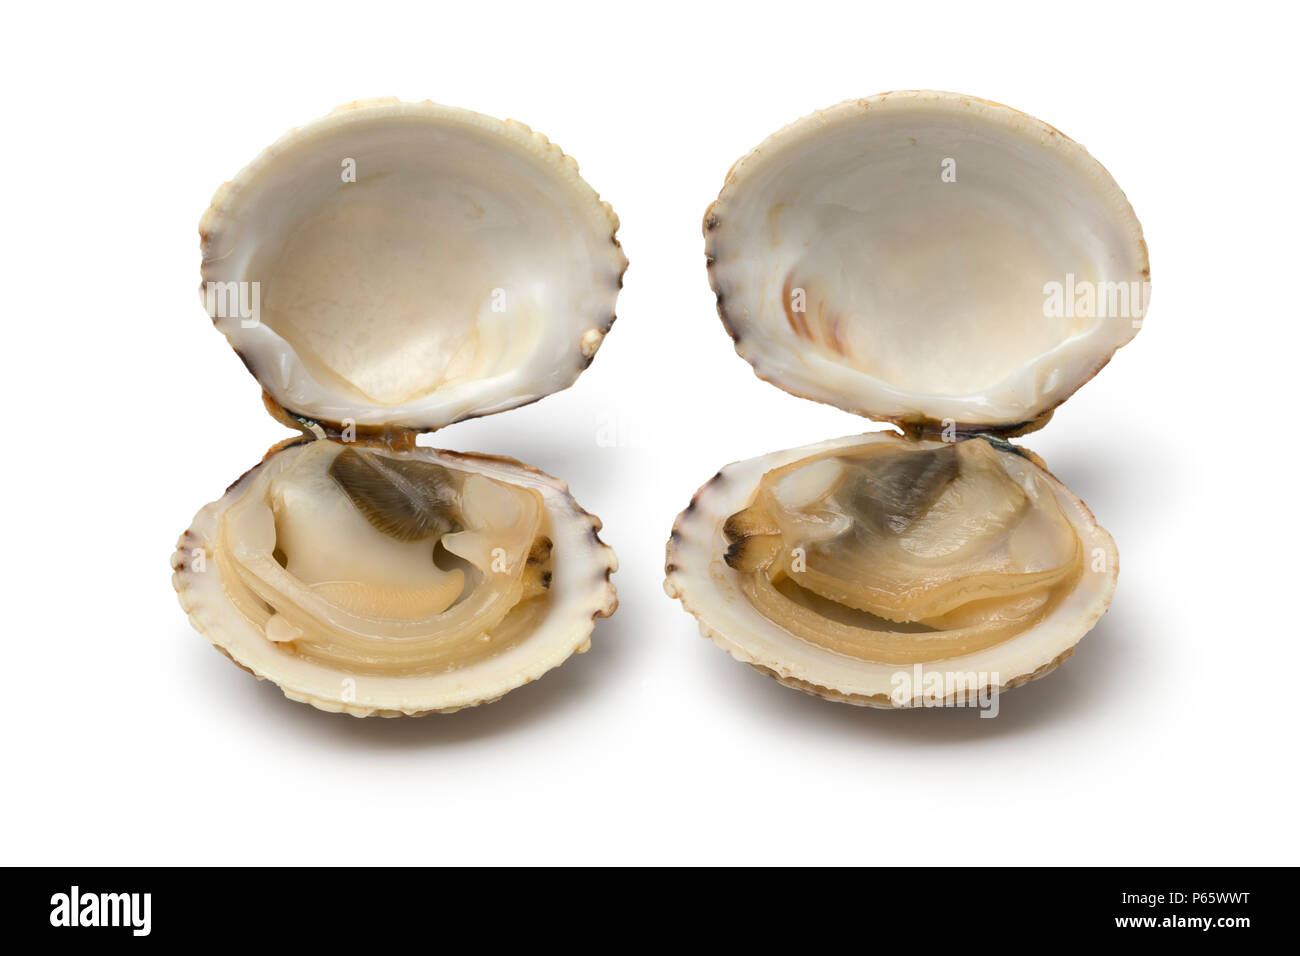 how to open raw clams easily